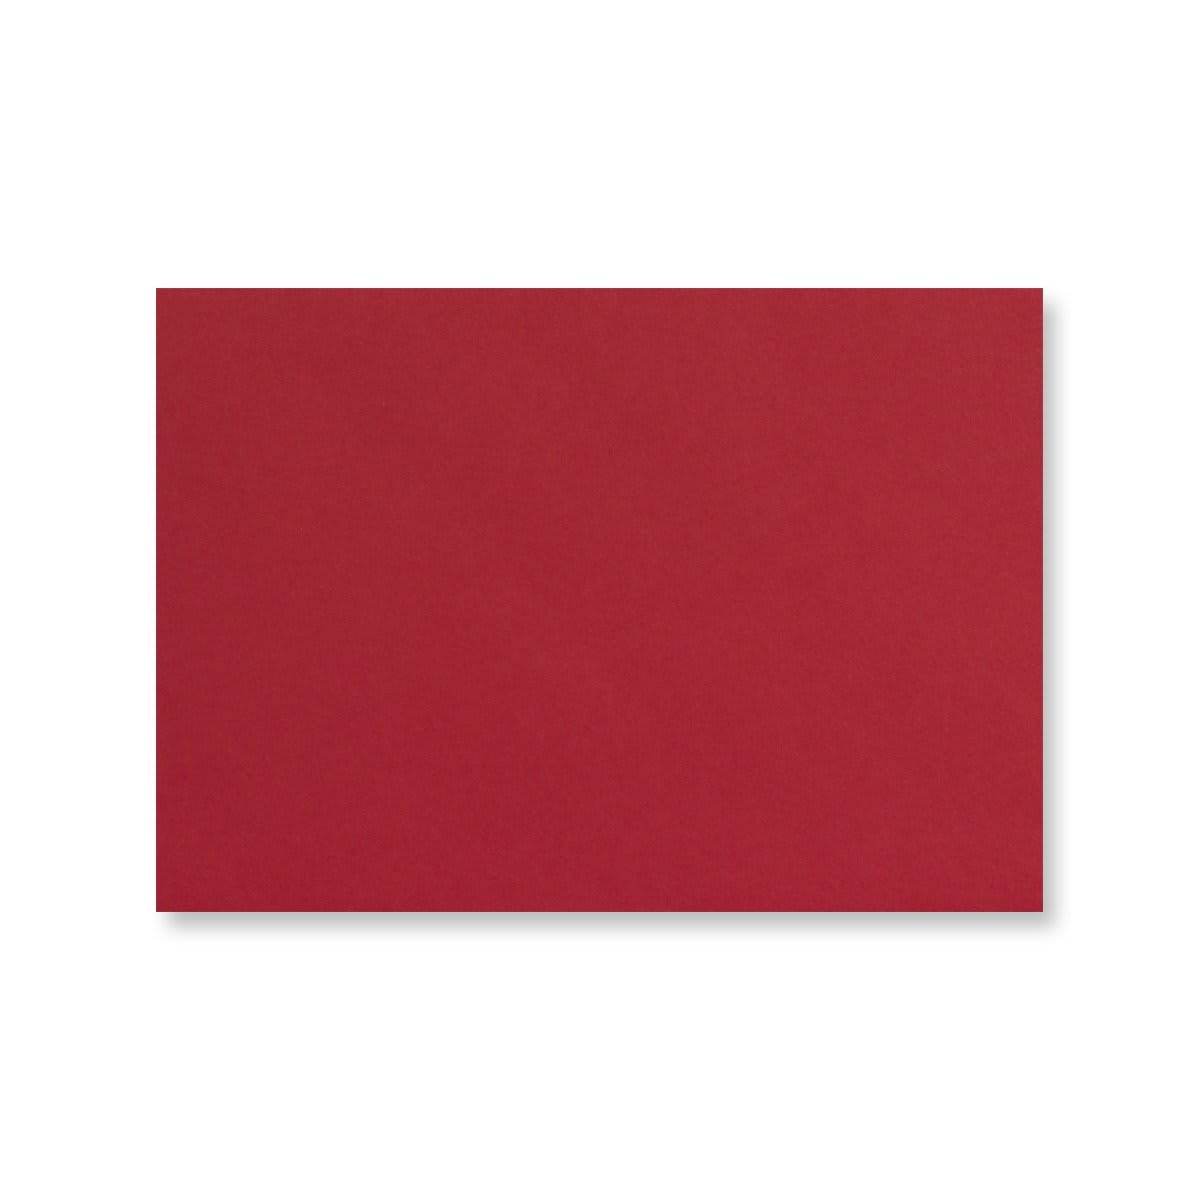 C6 DARK RED ENVELOPES 120GSM